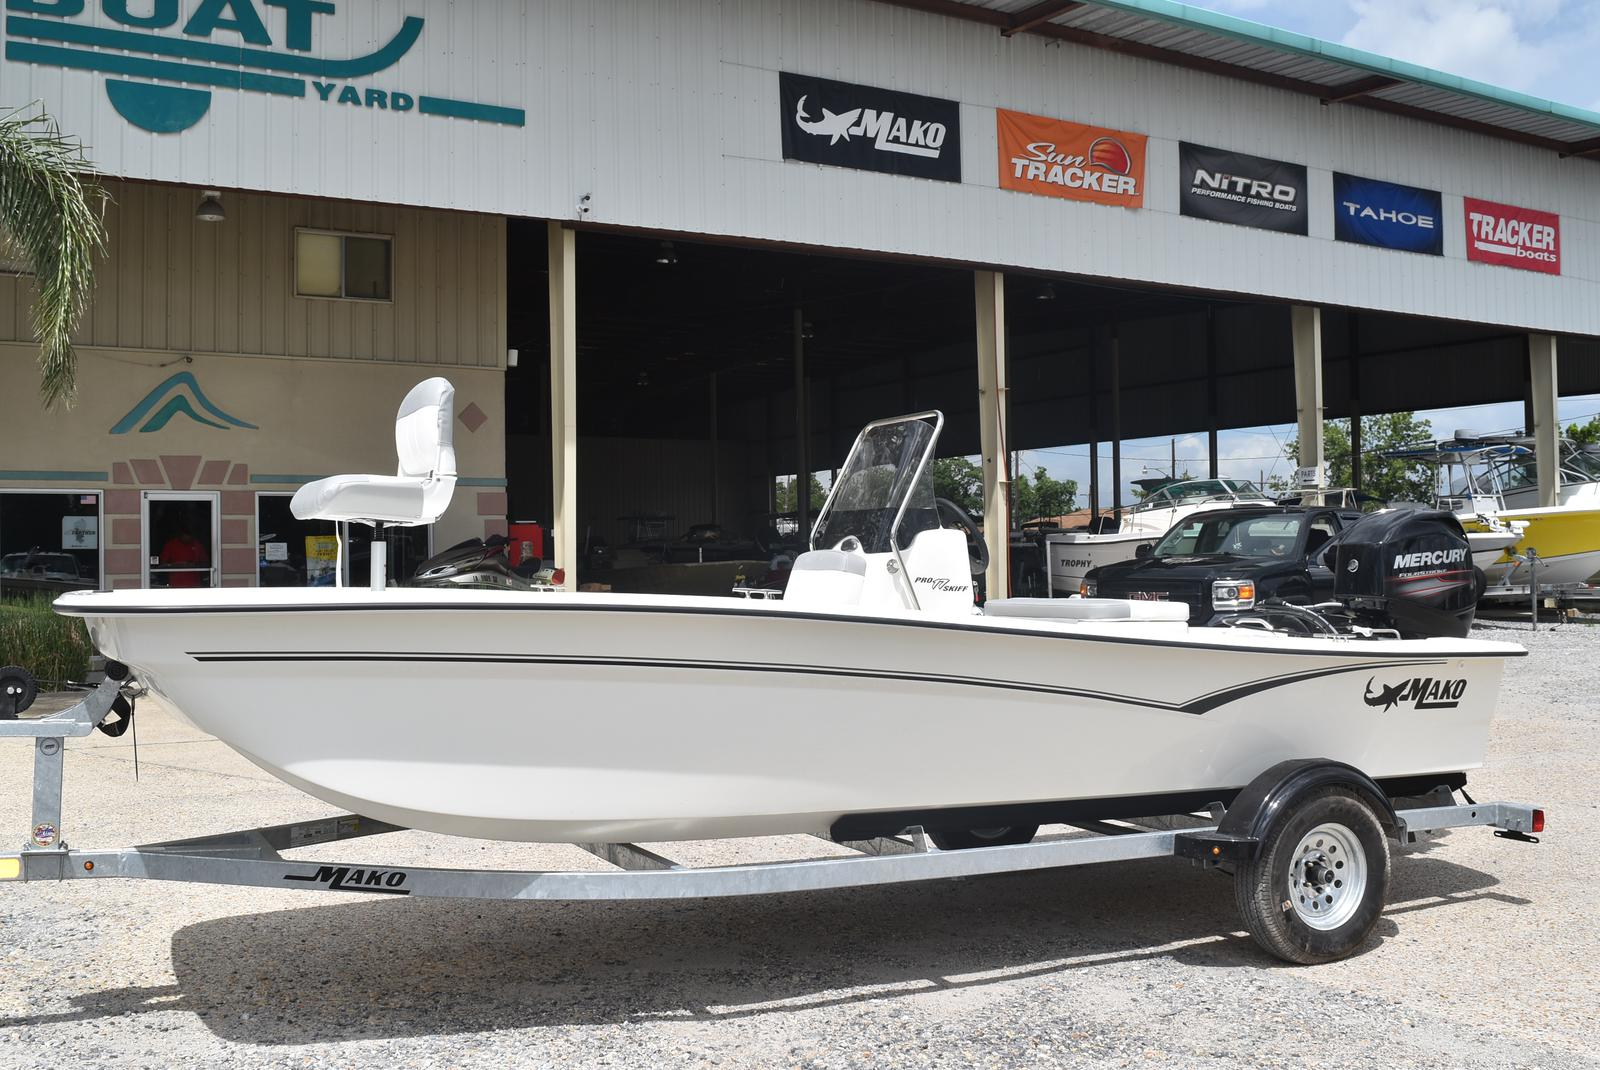 2020 Mako boat for sale, model of the boat is Pro Skiff 17, 75 ELPT & Image # 101 of 702